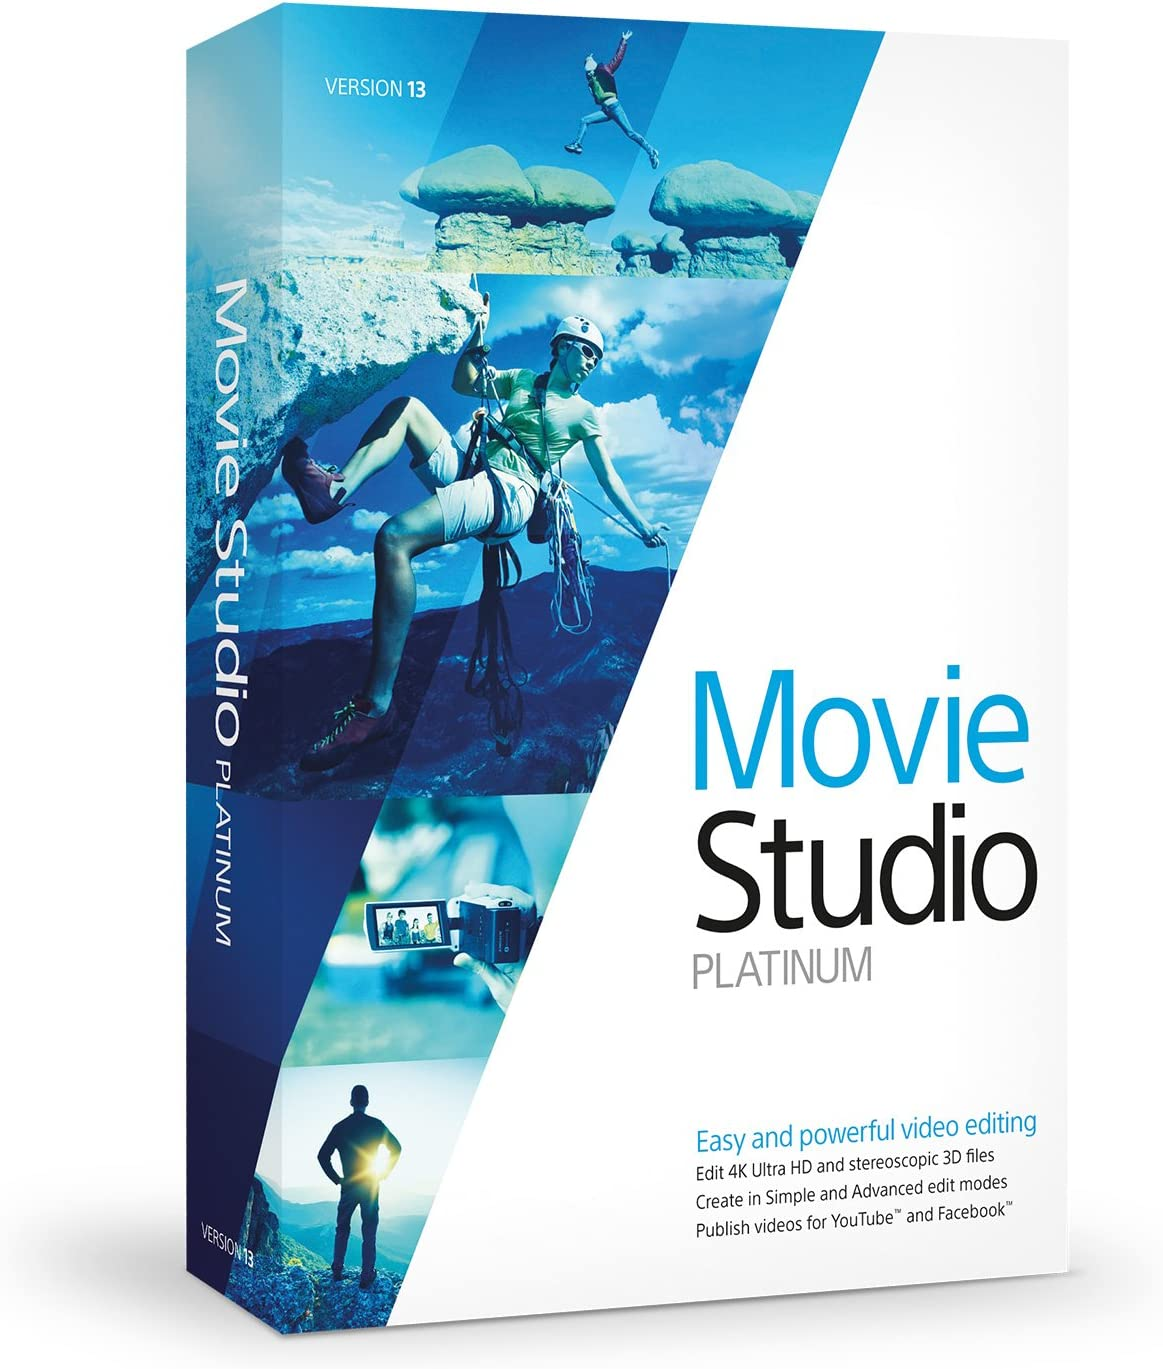 Sony Movie Studio 13 Platinum